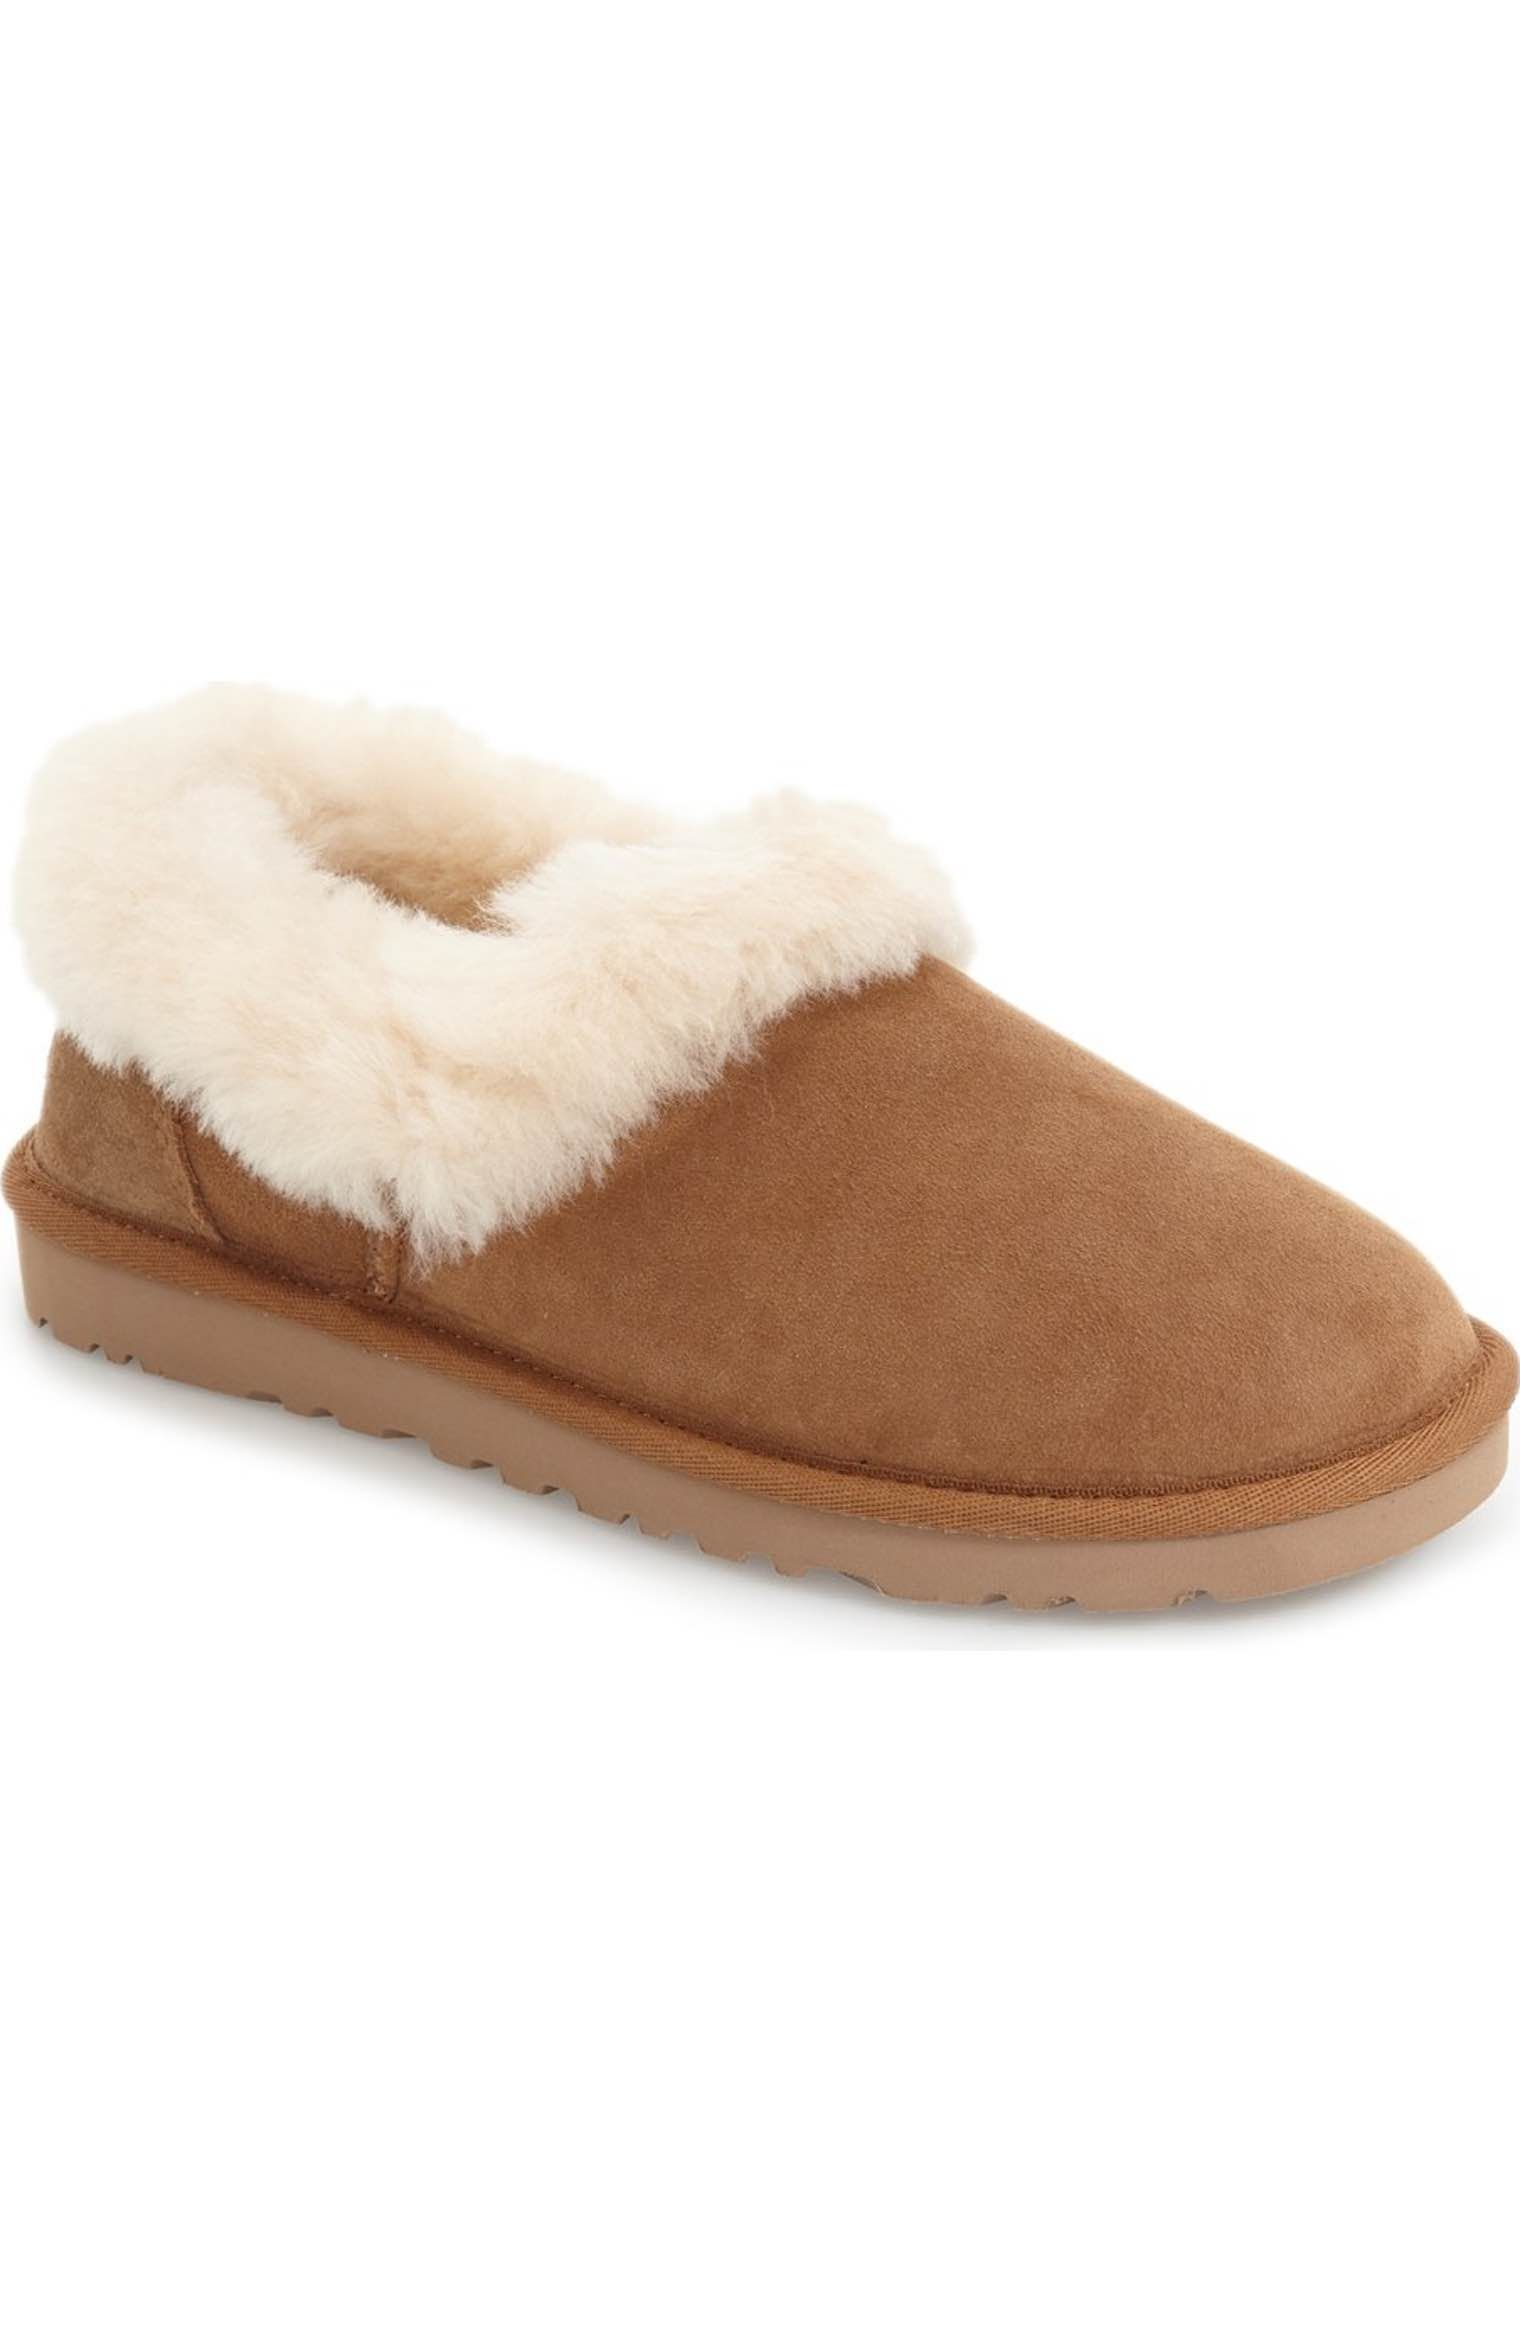 0755dc39152 Main Image - UGG® Nita Genuine Shearling Slipper (Women) | Shoes ...